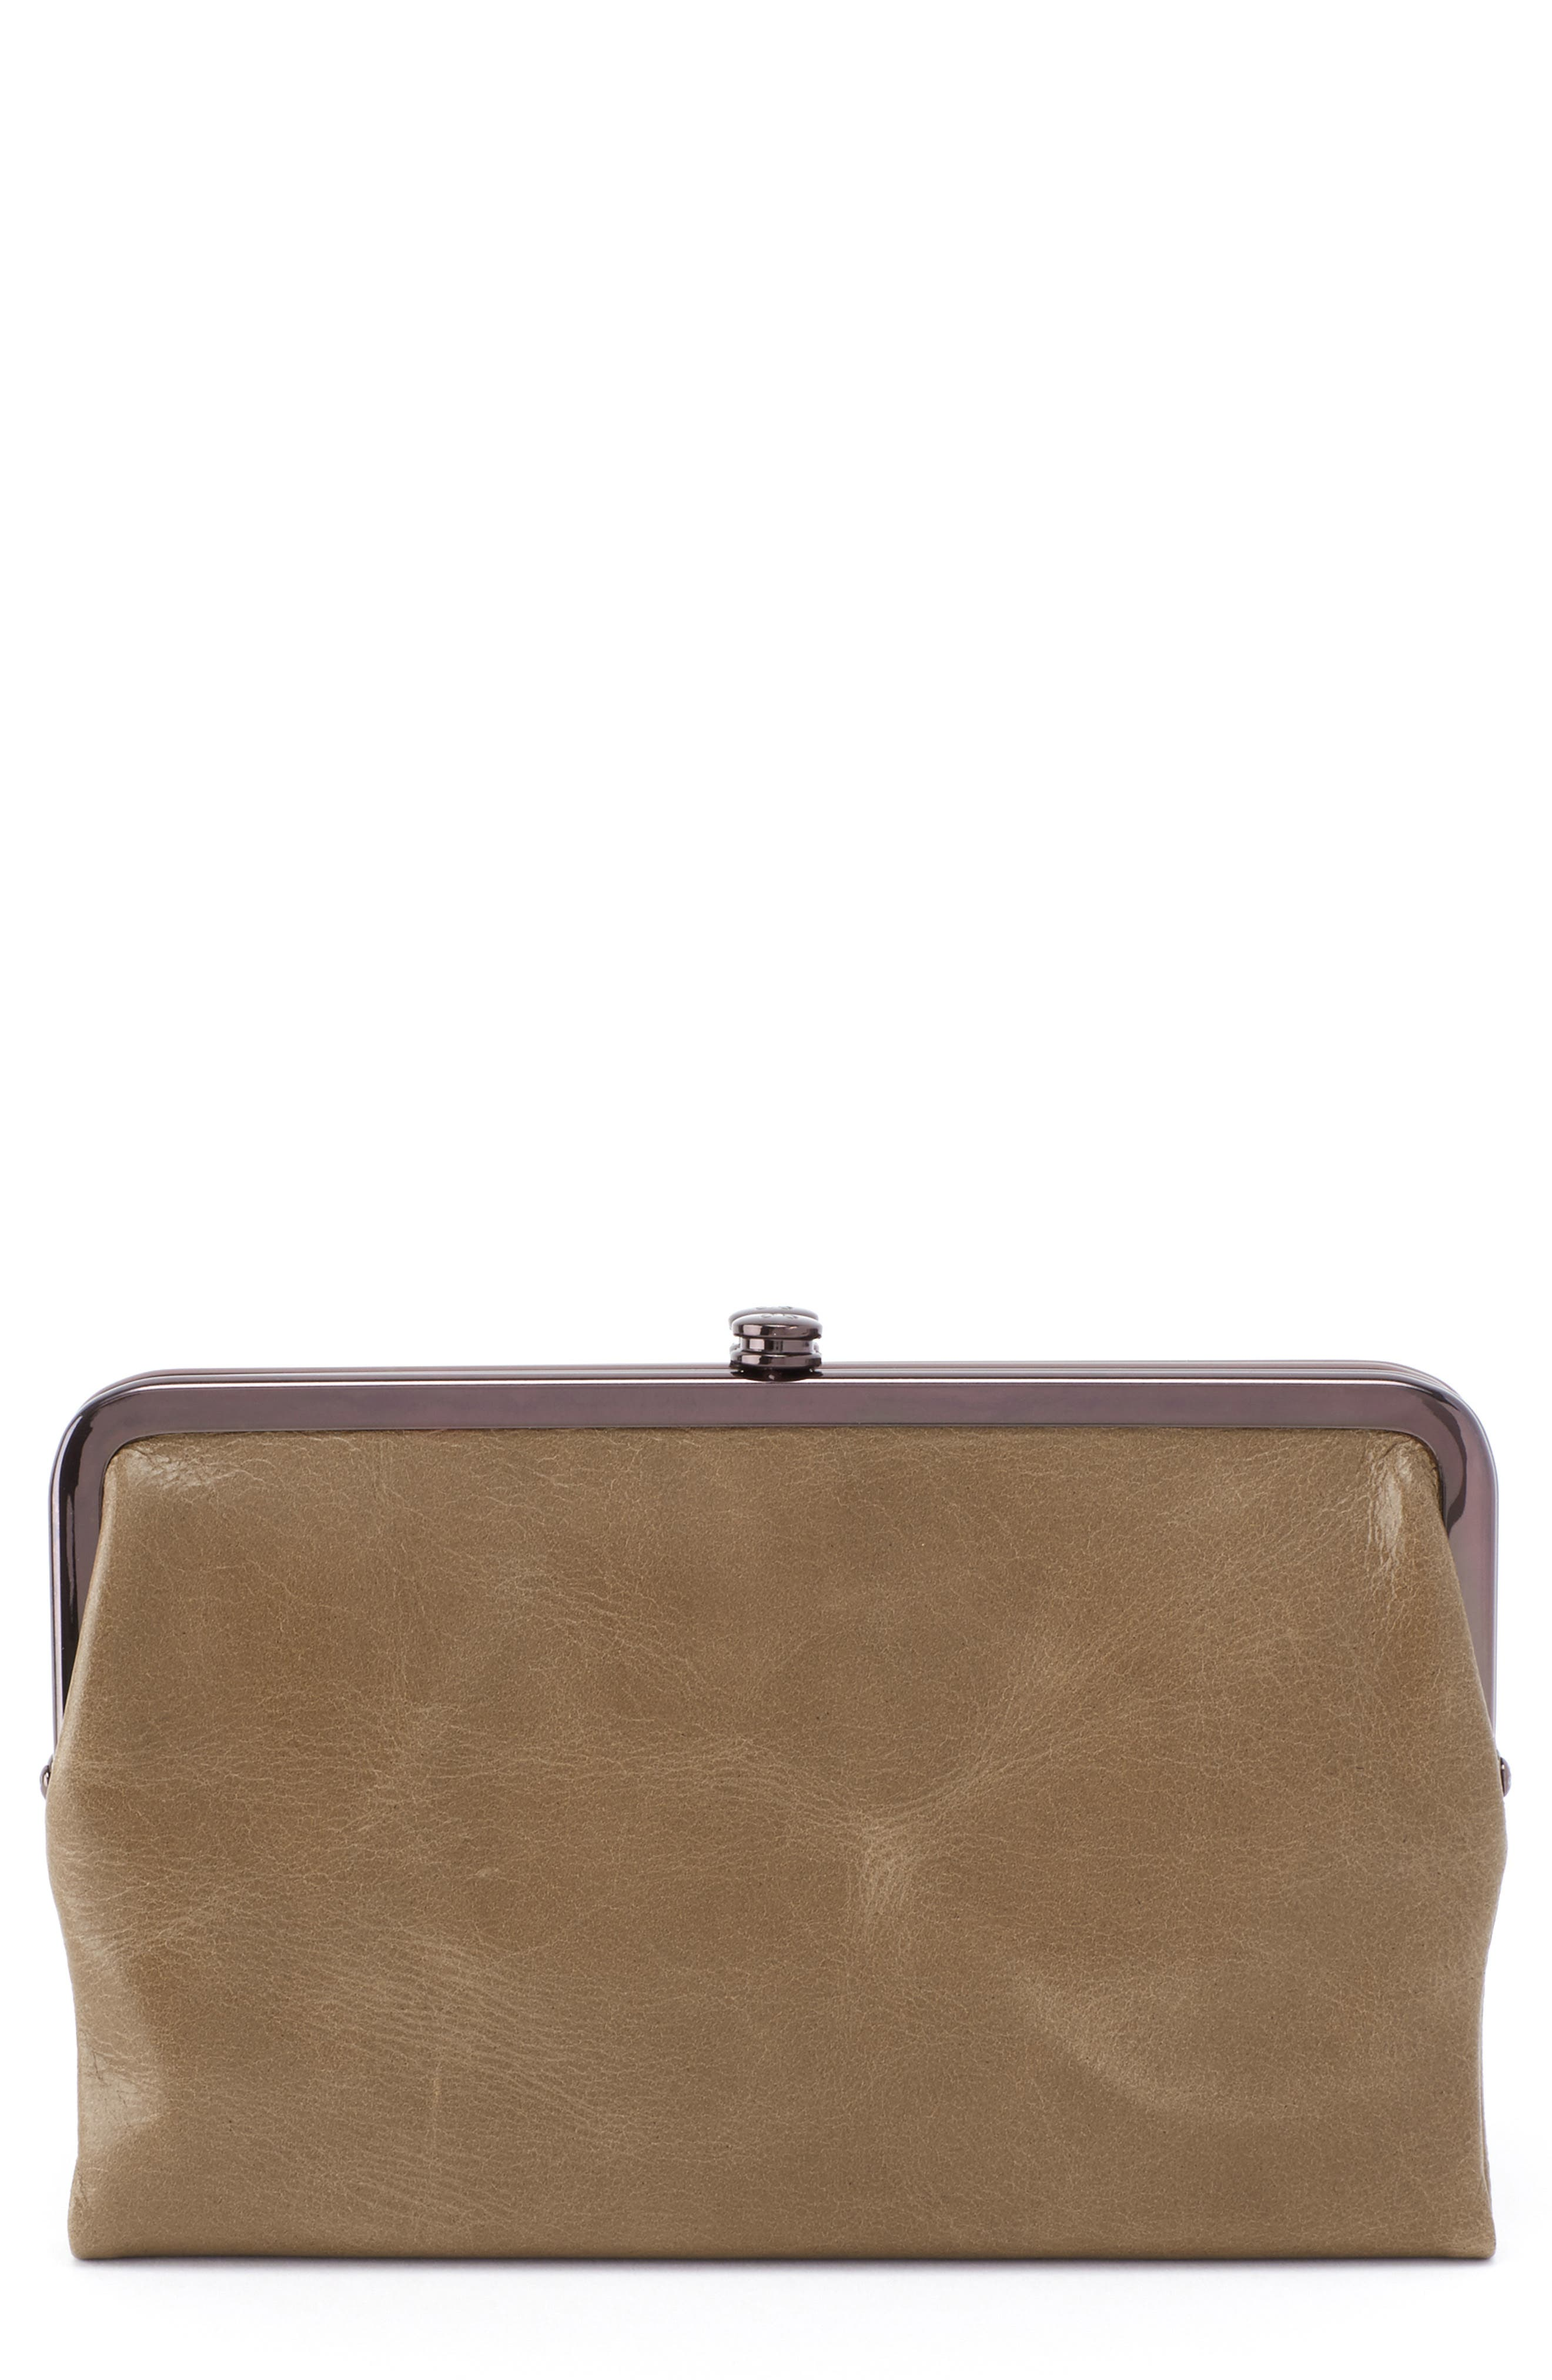 Glory Wallet,                         Main,                         color, 200